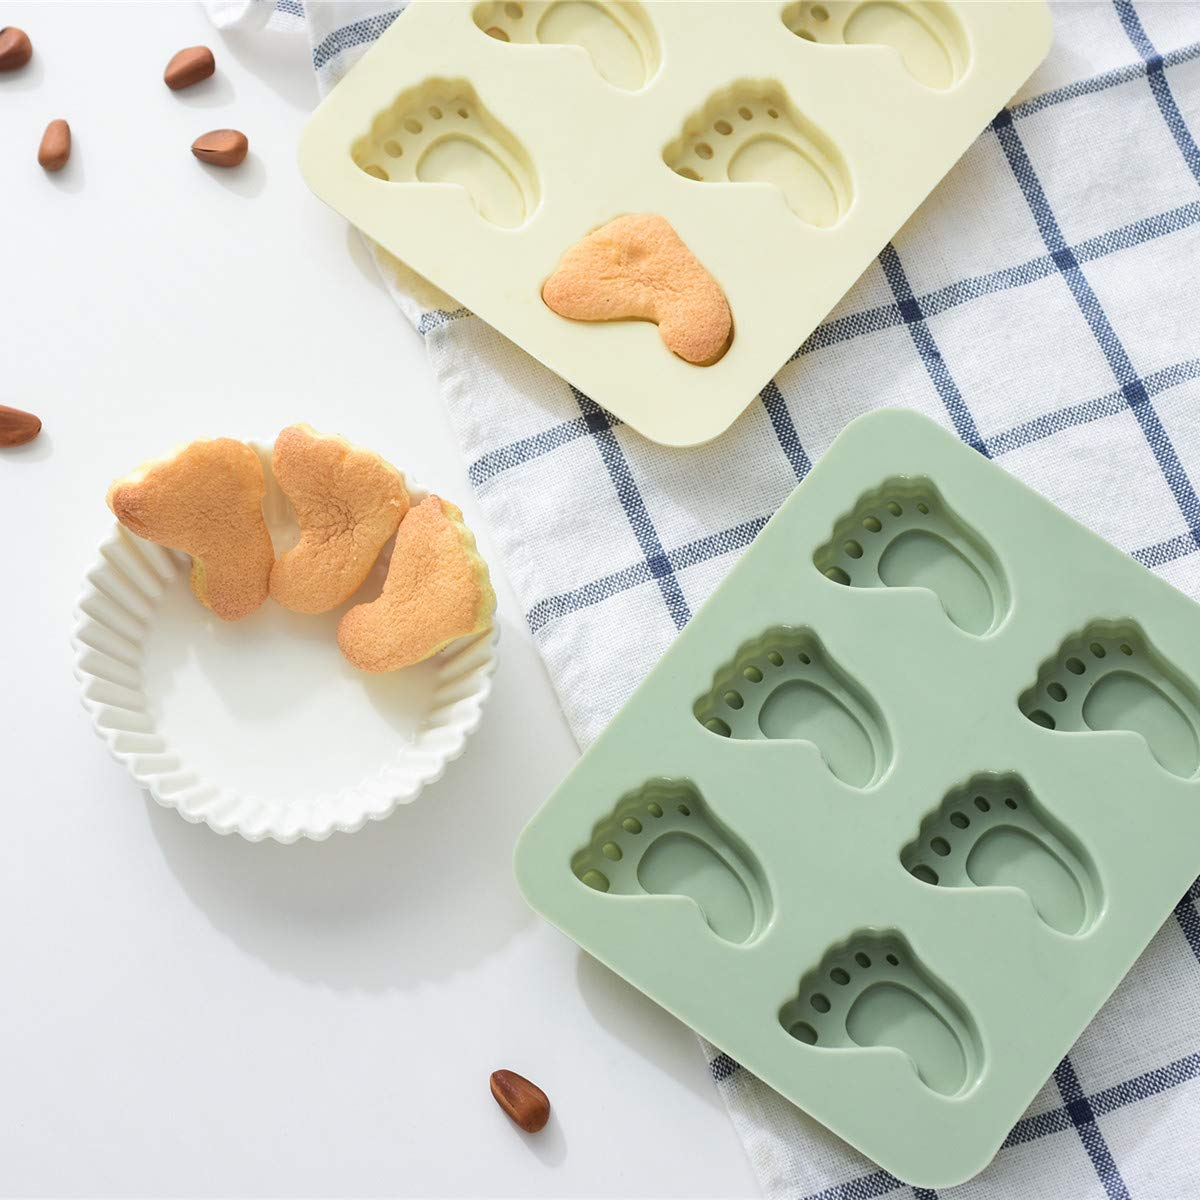 Tang Xiao Bang Diamond Silicone Chocolate Mold 20 Cavities Candy Making Molds DIY Mould for Mousse Jelly Cookie